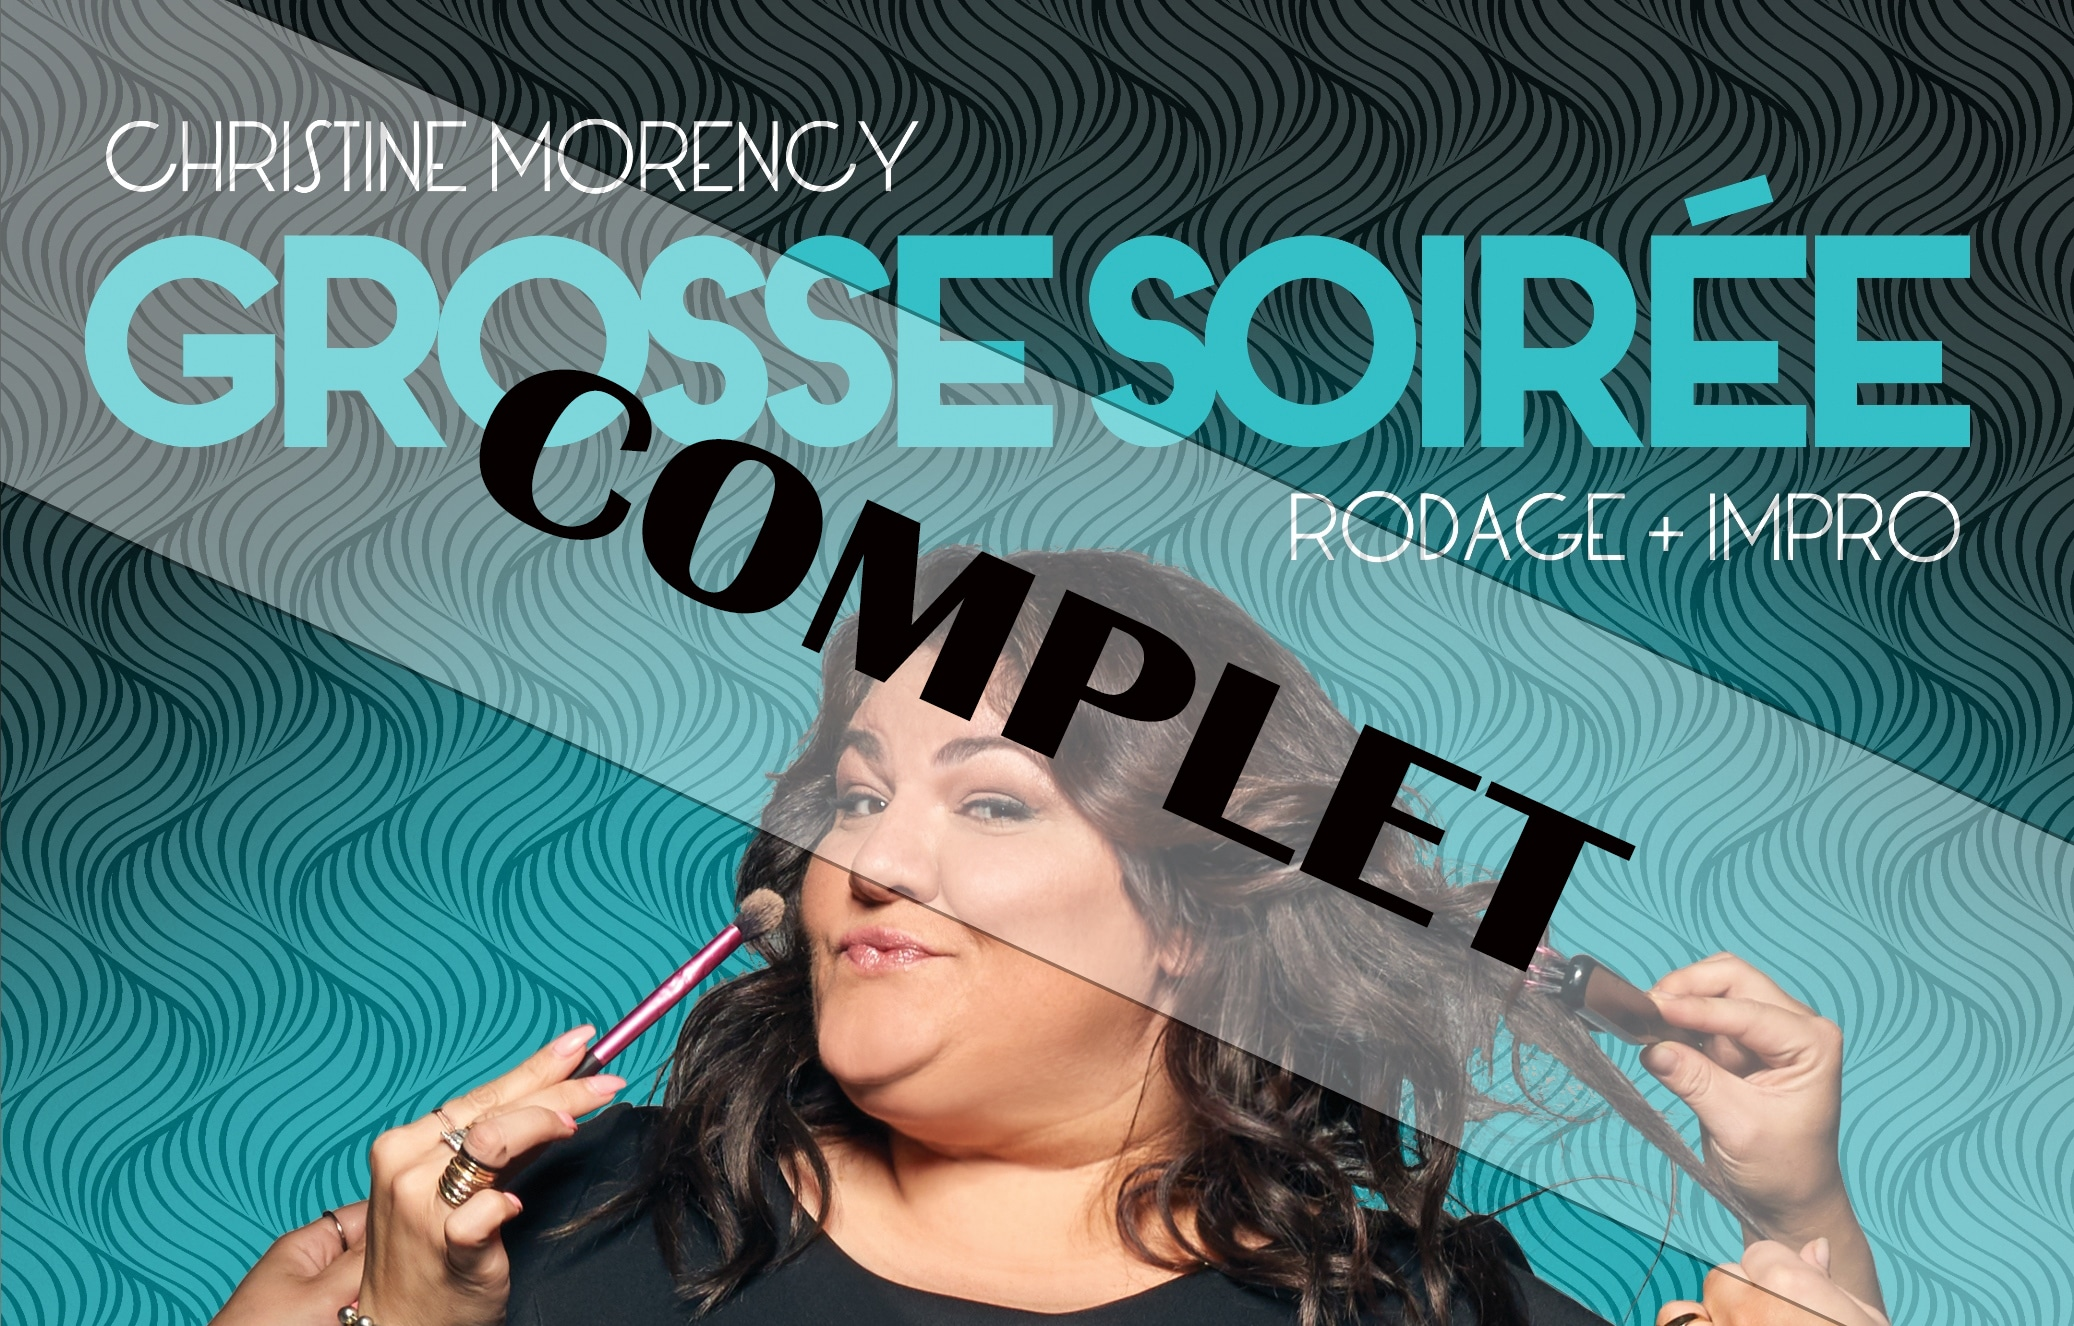 MORENCY CHRISTINE spectacle complet